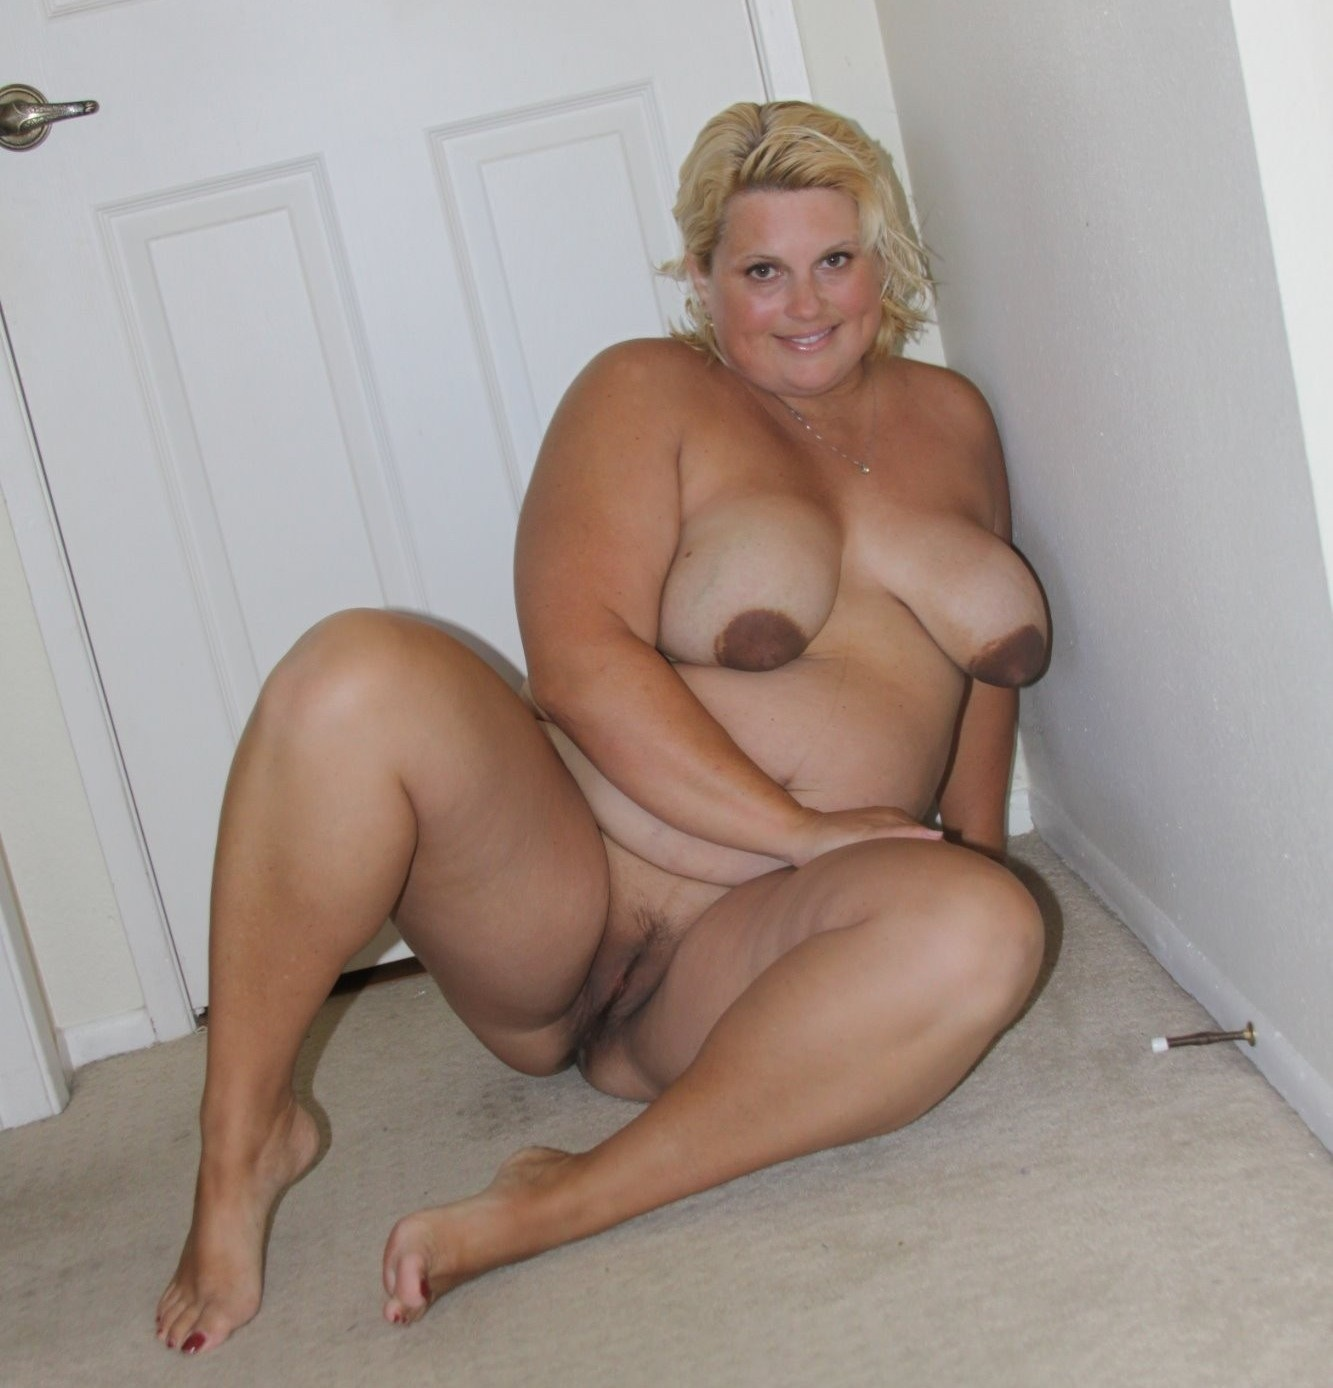 She want bbw mature vagina photos and Cassidy!